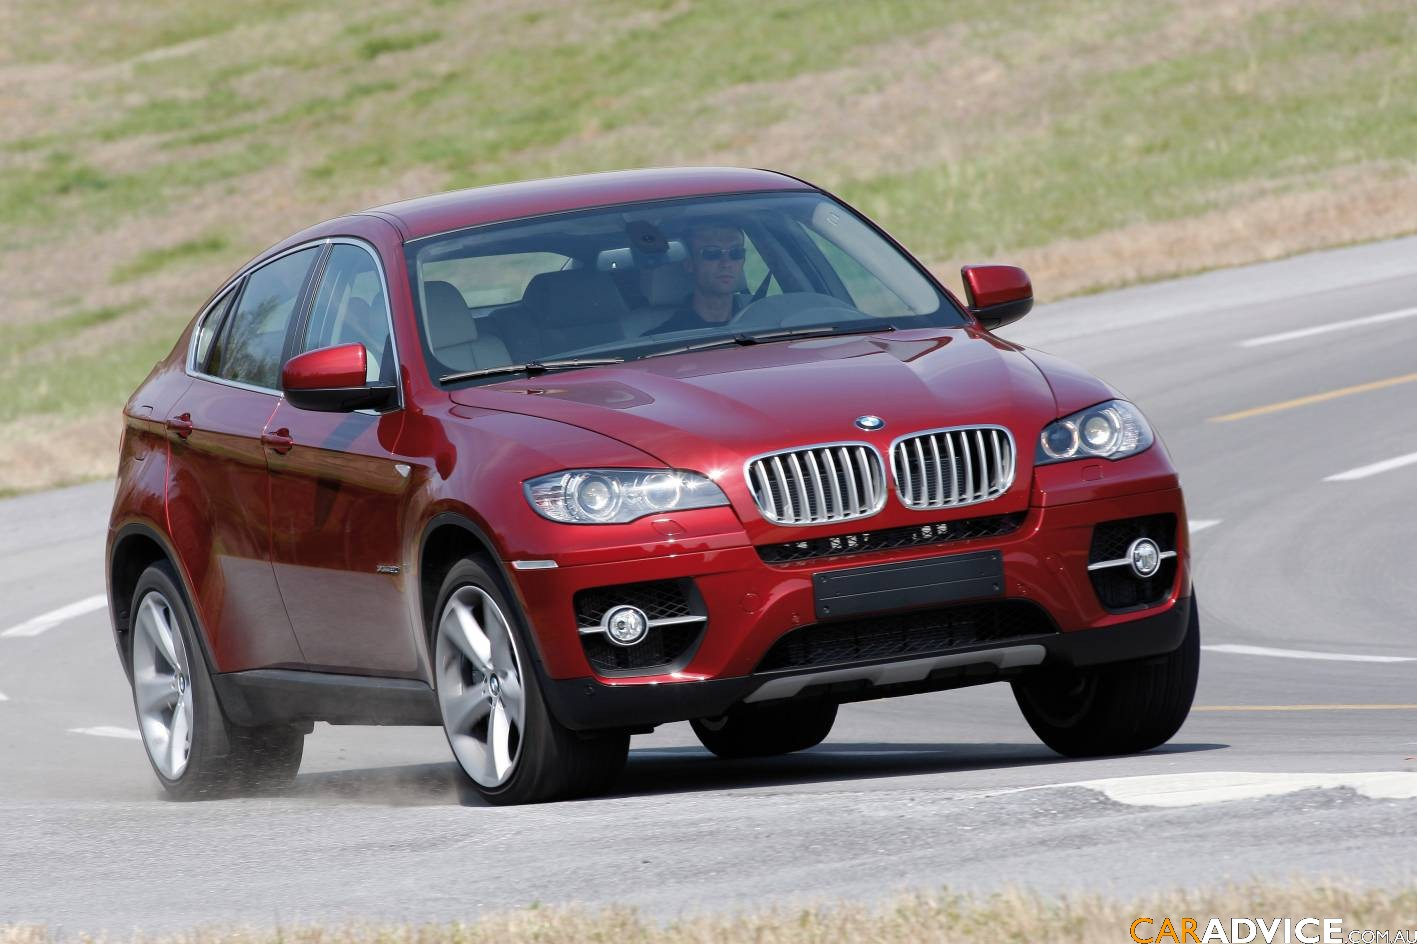 2009 Bmw X6 Xdrive50i V8 Twin Turbo Photos 1 Of 12